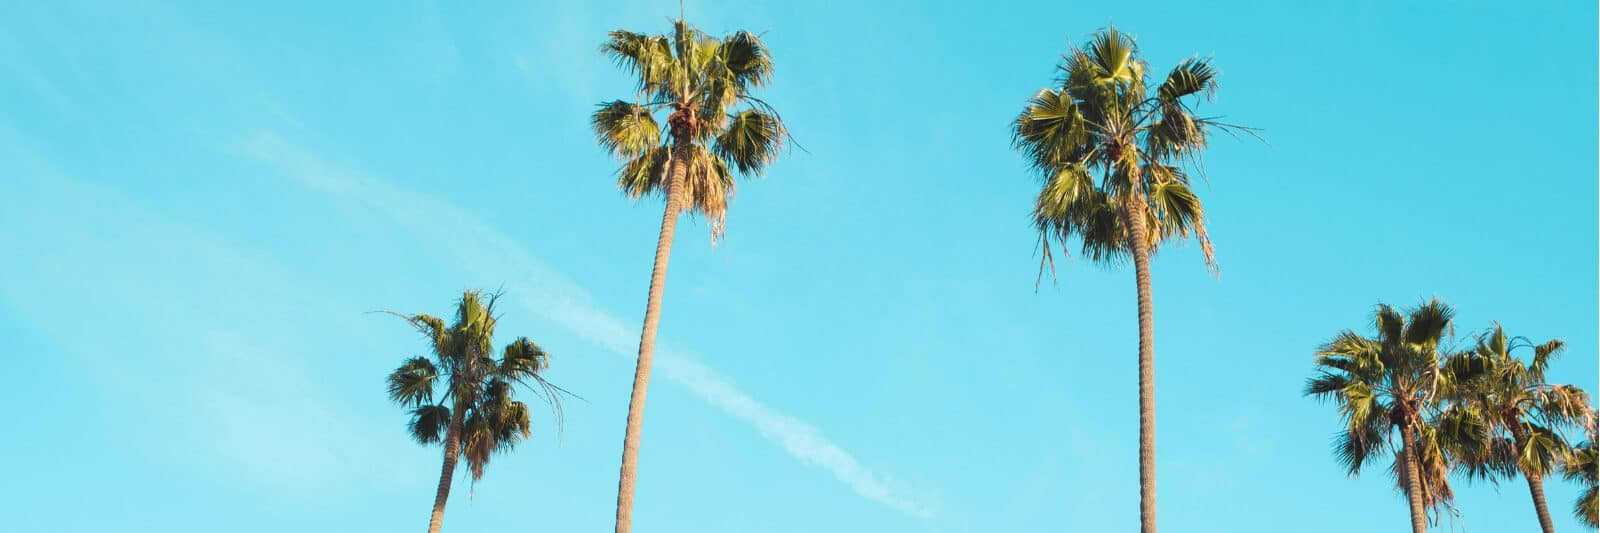 Looking up at palm trees swaying in the wind on a blue sky day